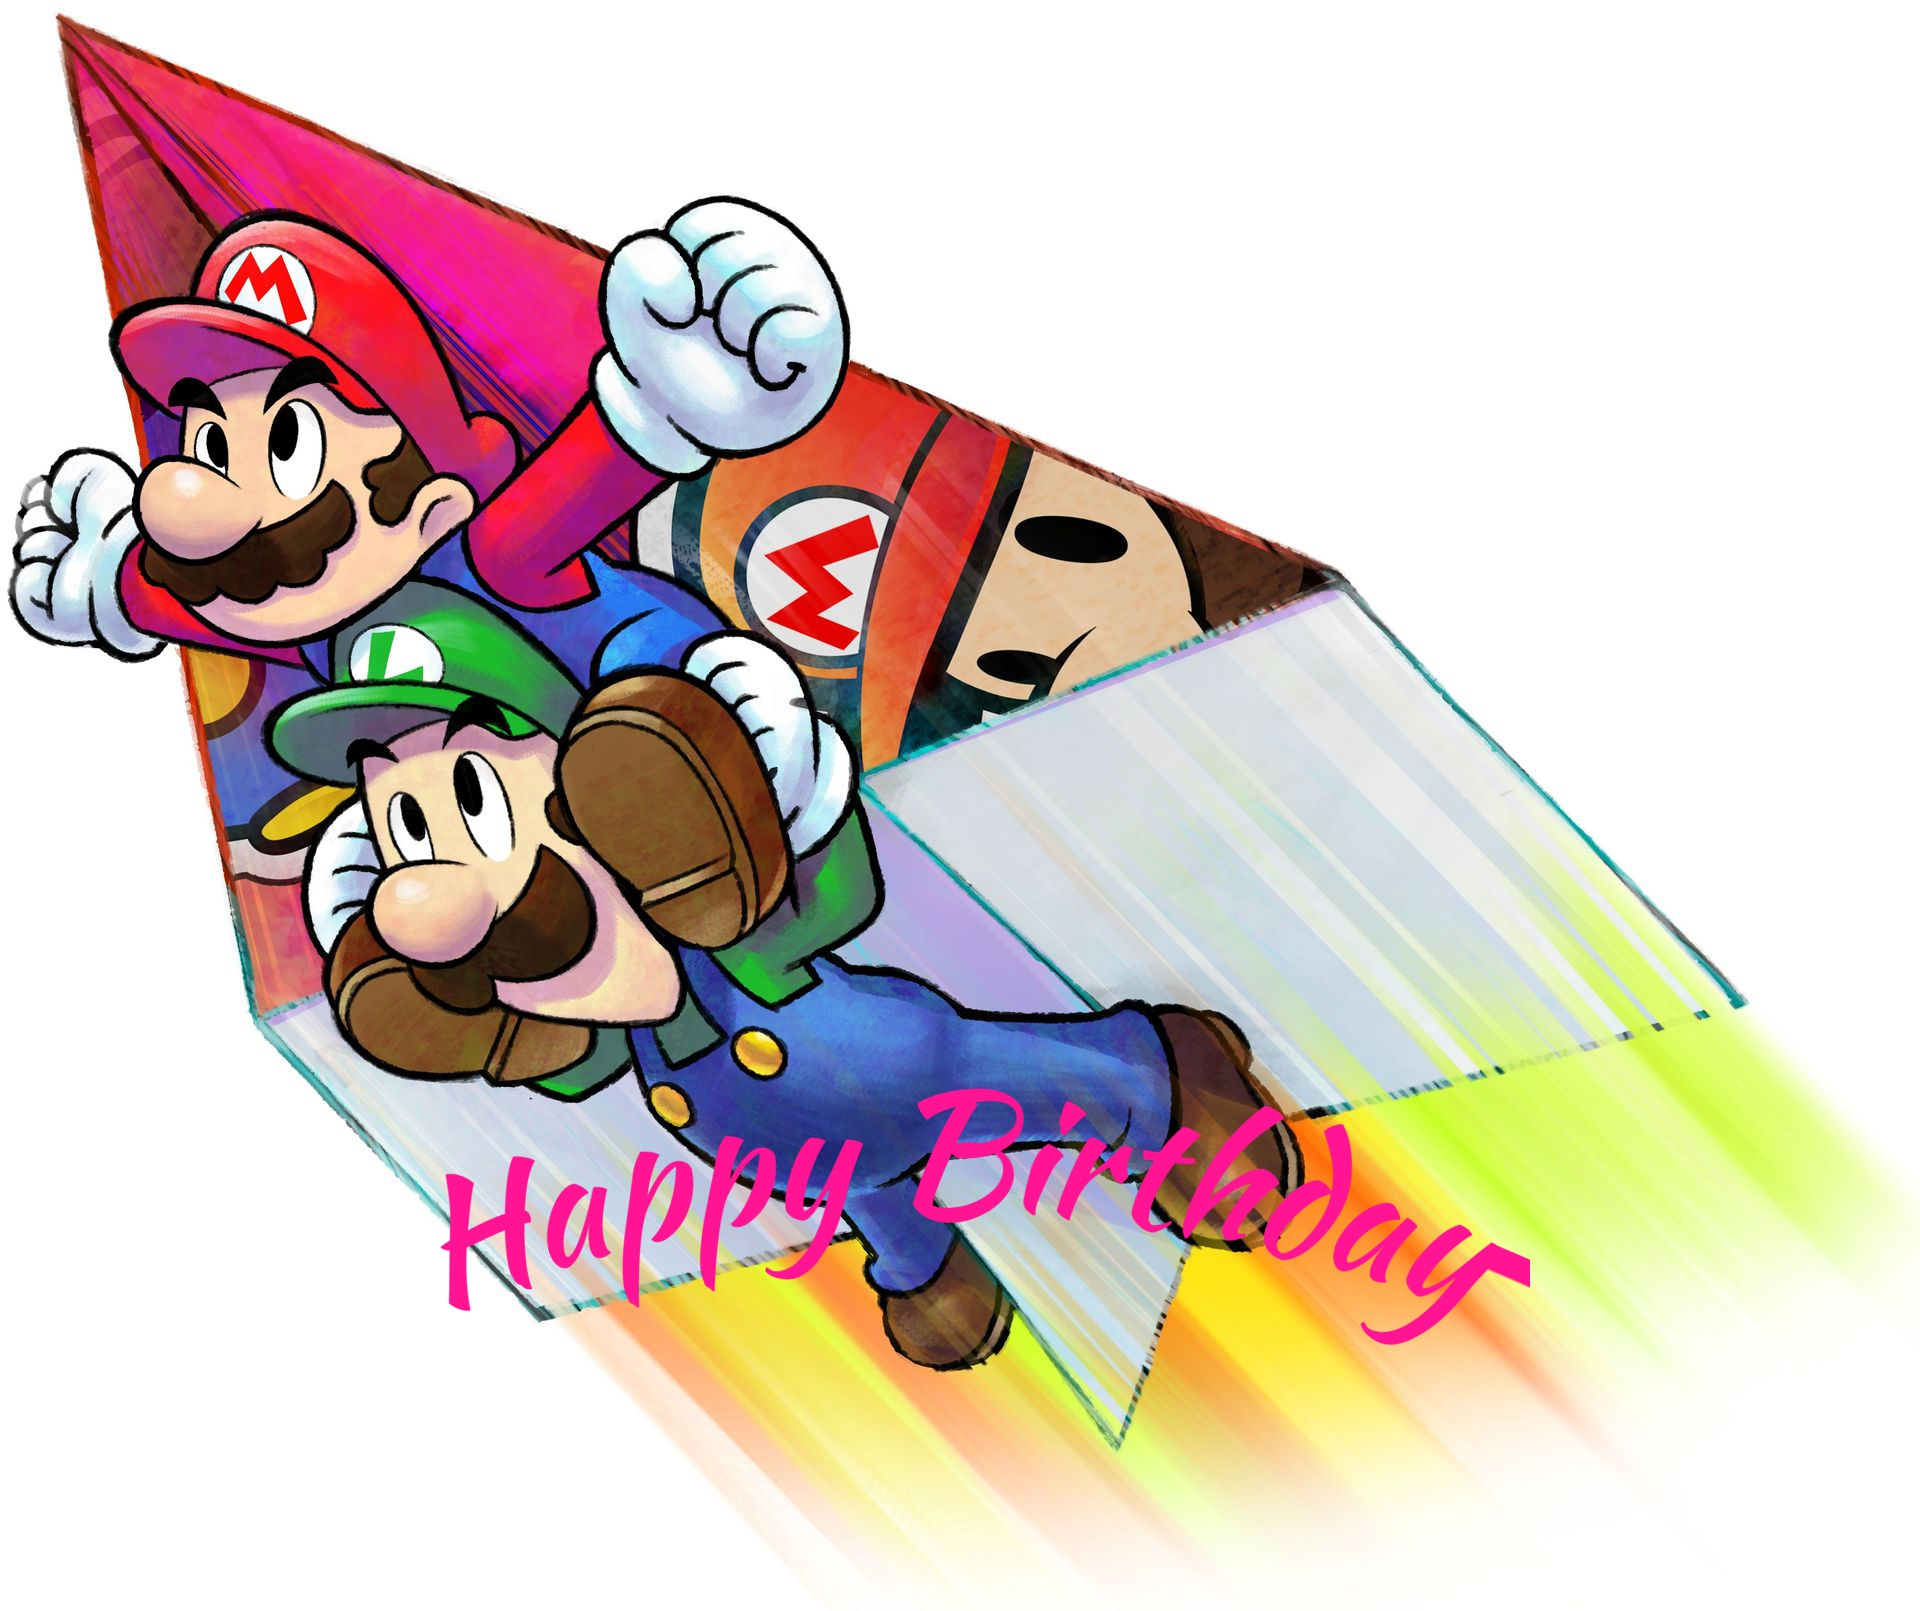 Mario and Luigi greeting cards